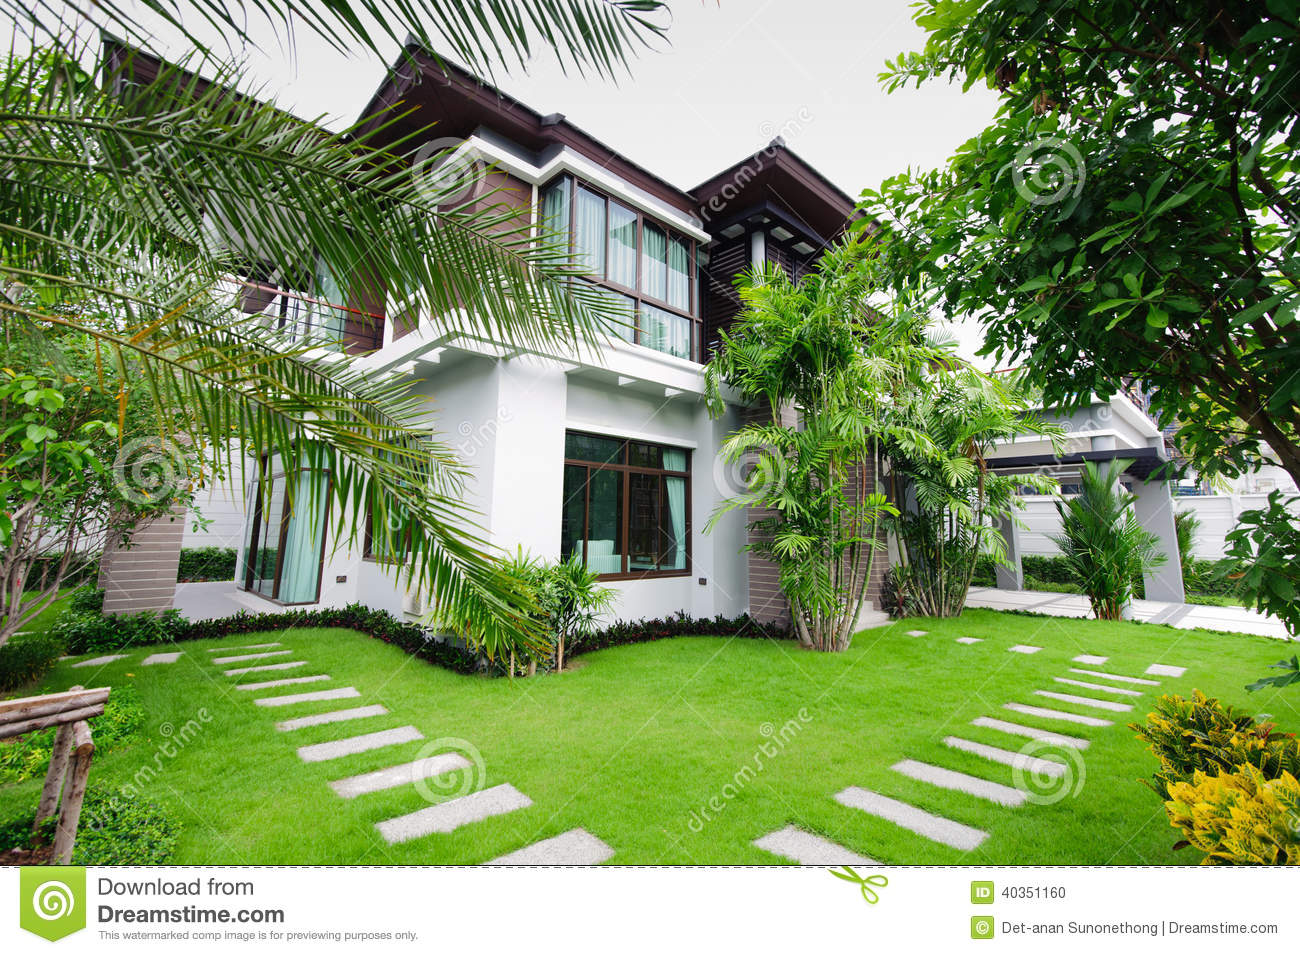 Maison moderne dans le jardin photo stock image 40351160 for Photo de jardin de maison